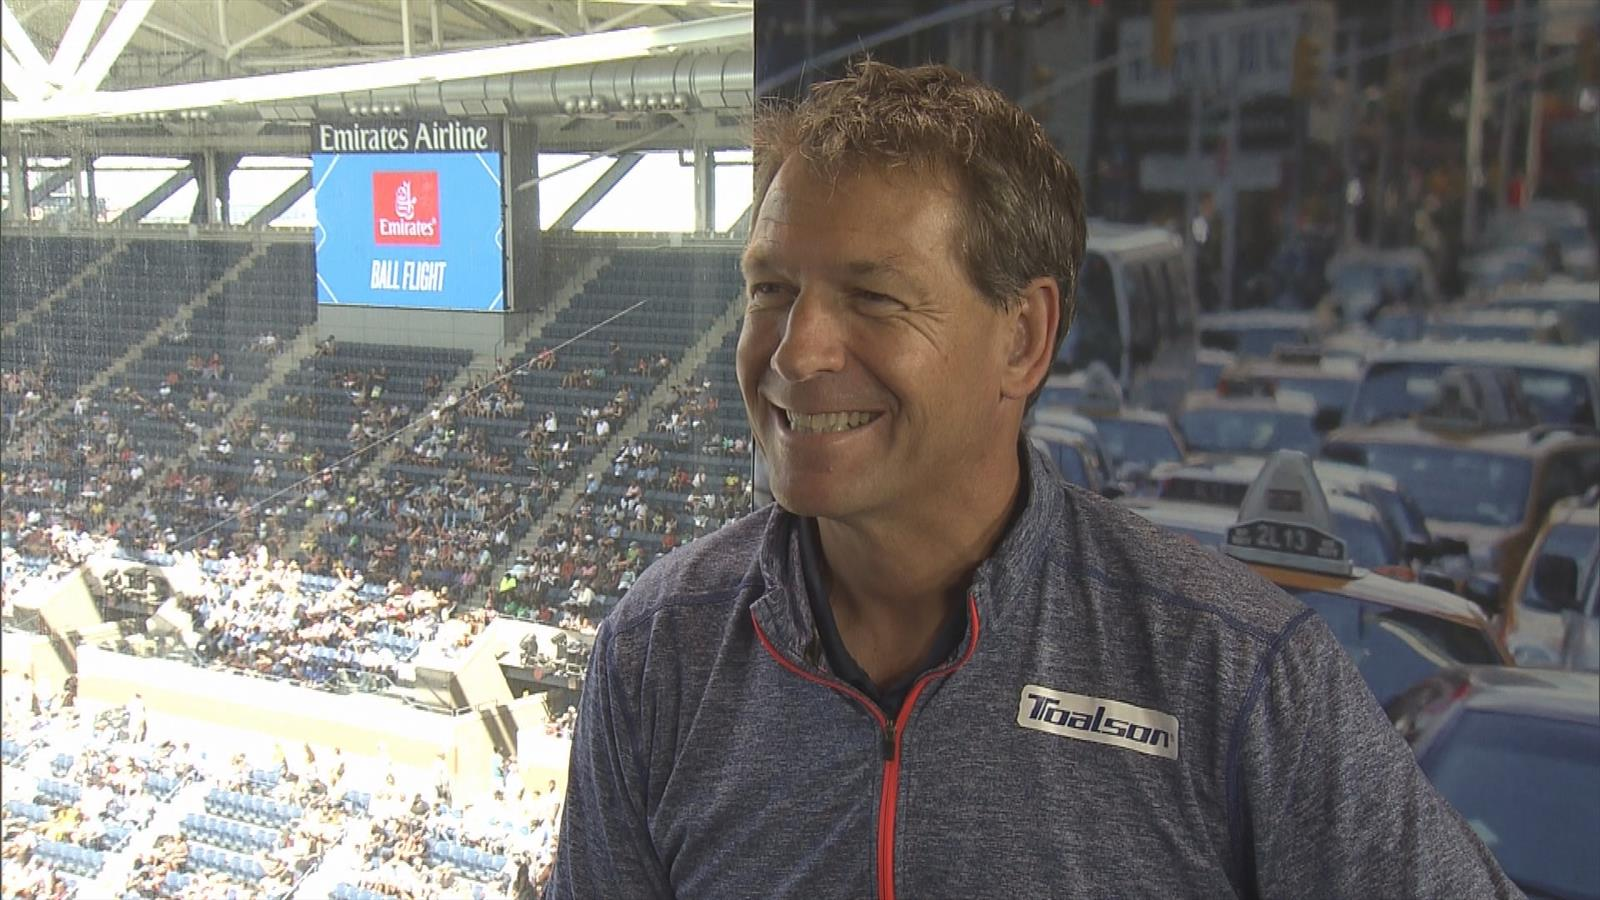 Tenniscoach Sven Groeneveld over Maria Sharapova - Serena Williams: 'Sharapova begint sterk'